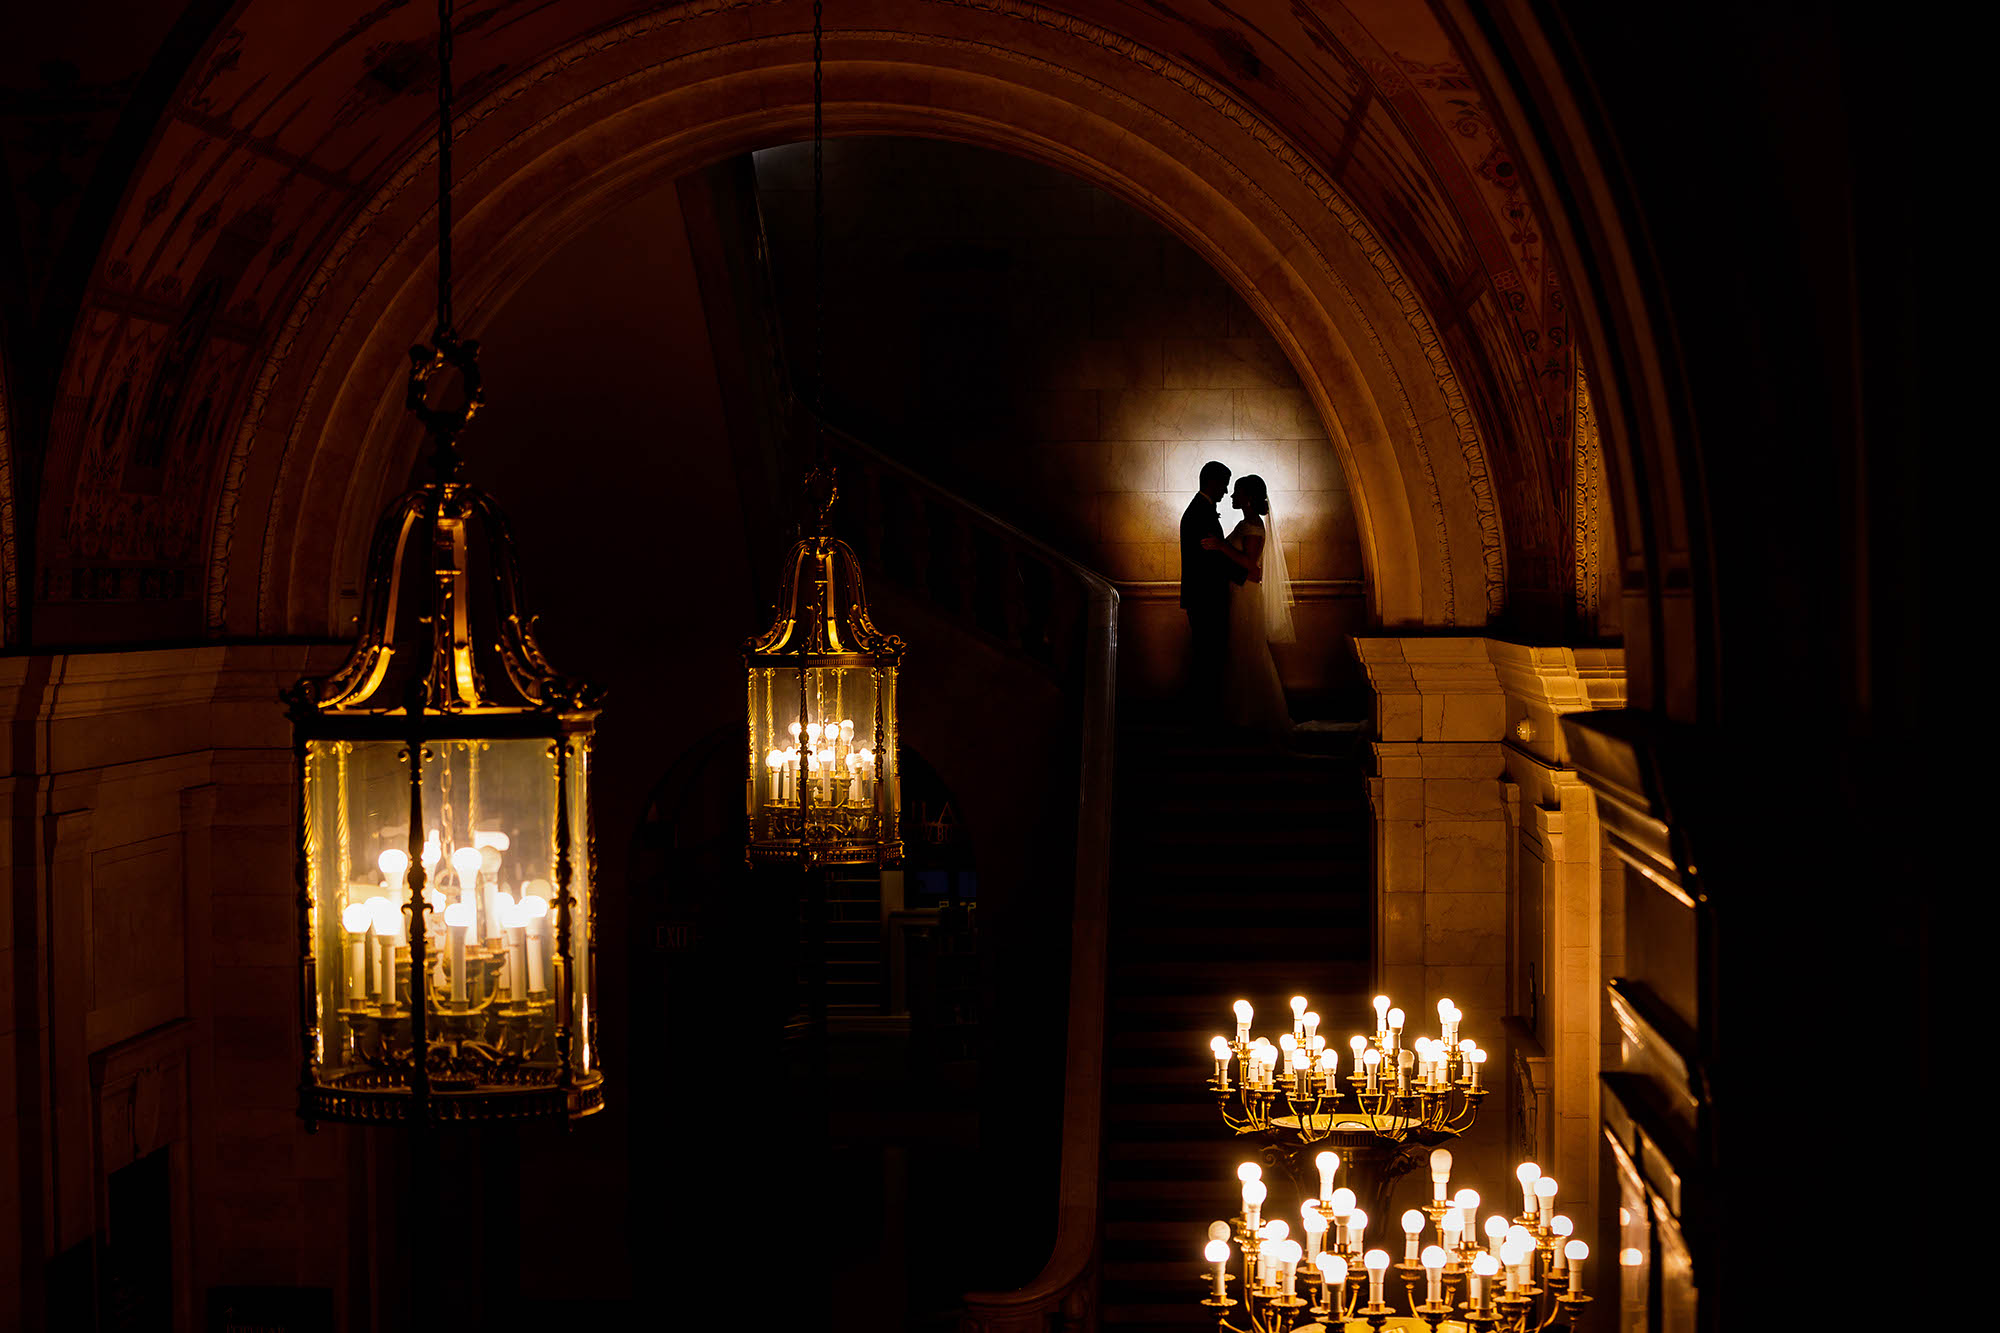 A dramatic environmental wedding day portrait on the stairs of the Cleveland Public LIbrary.